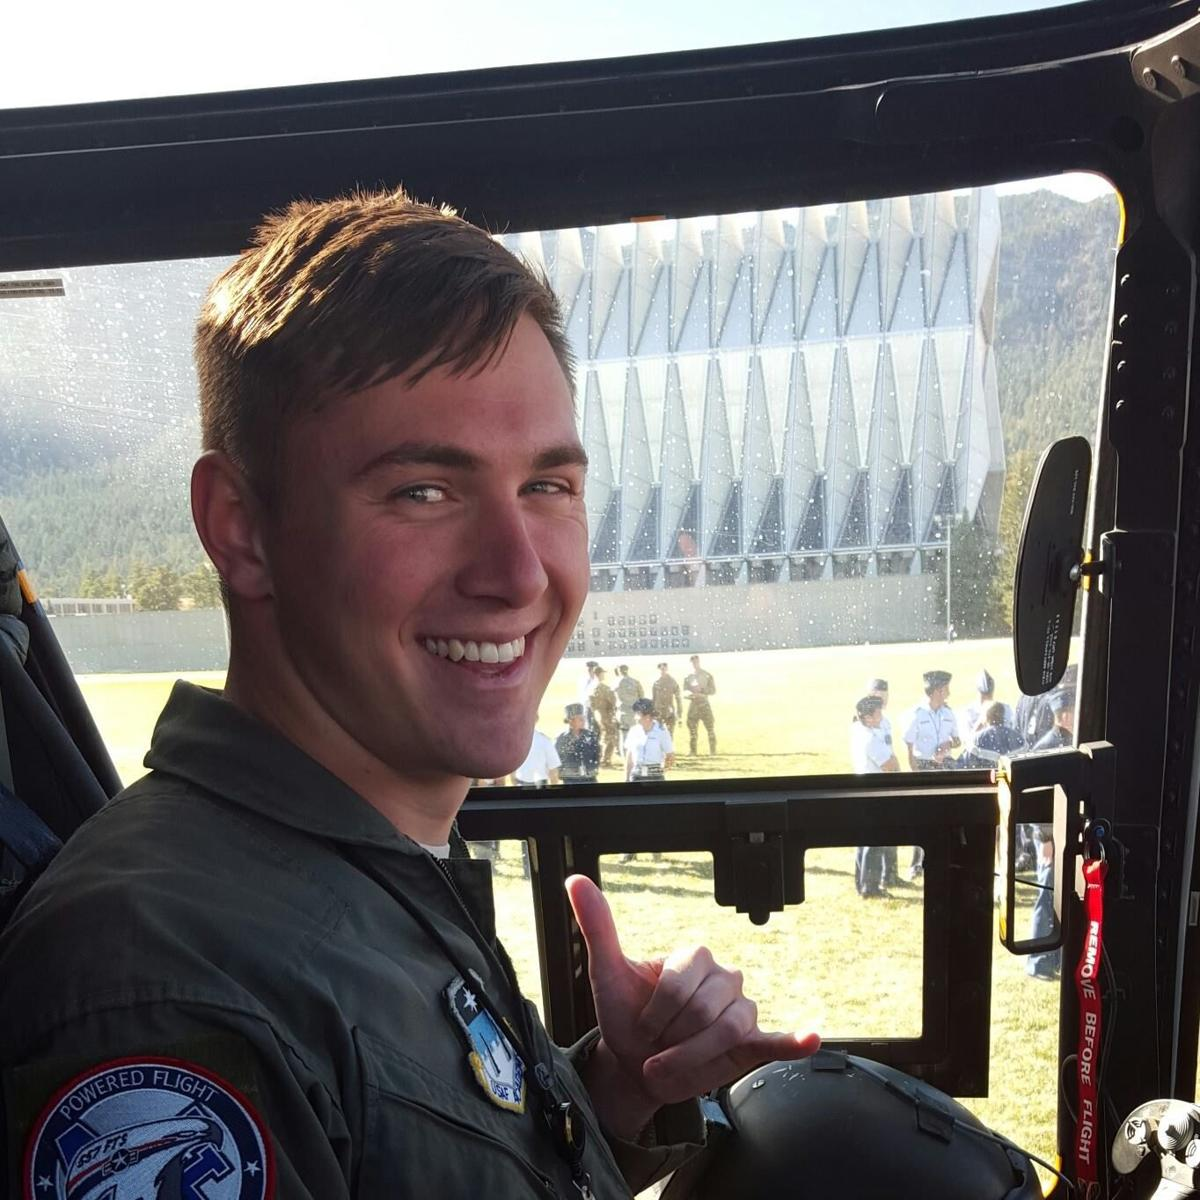 West Salem local headed to Air Force flight school | Local